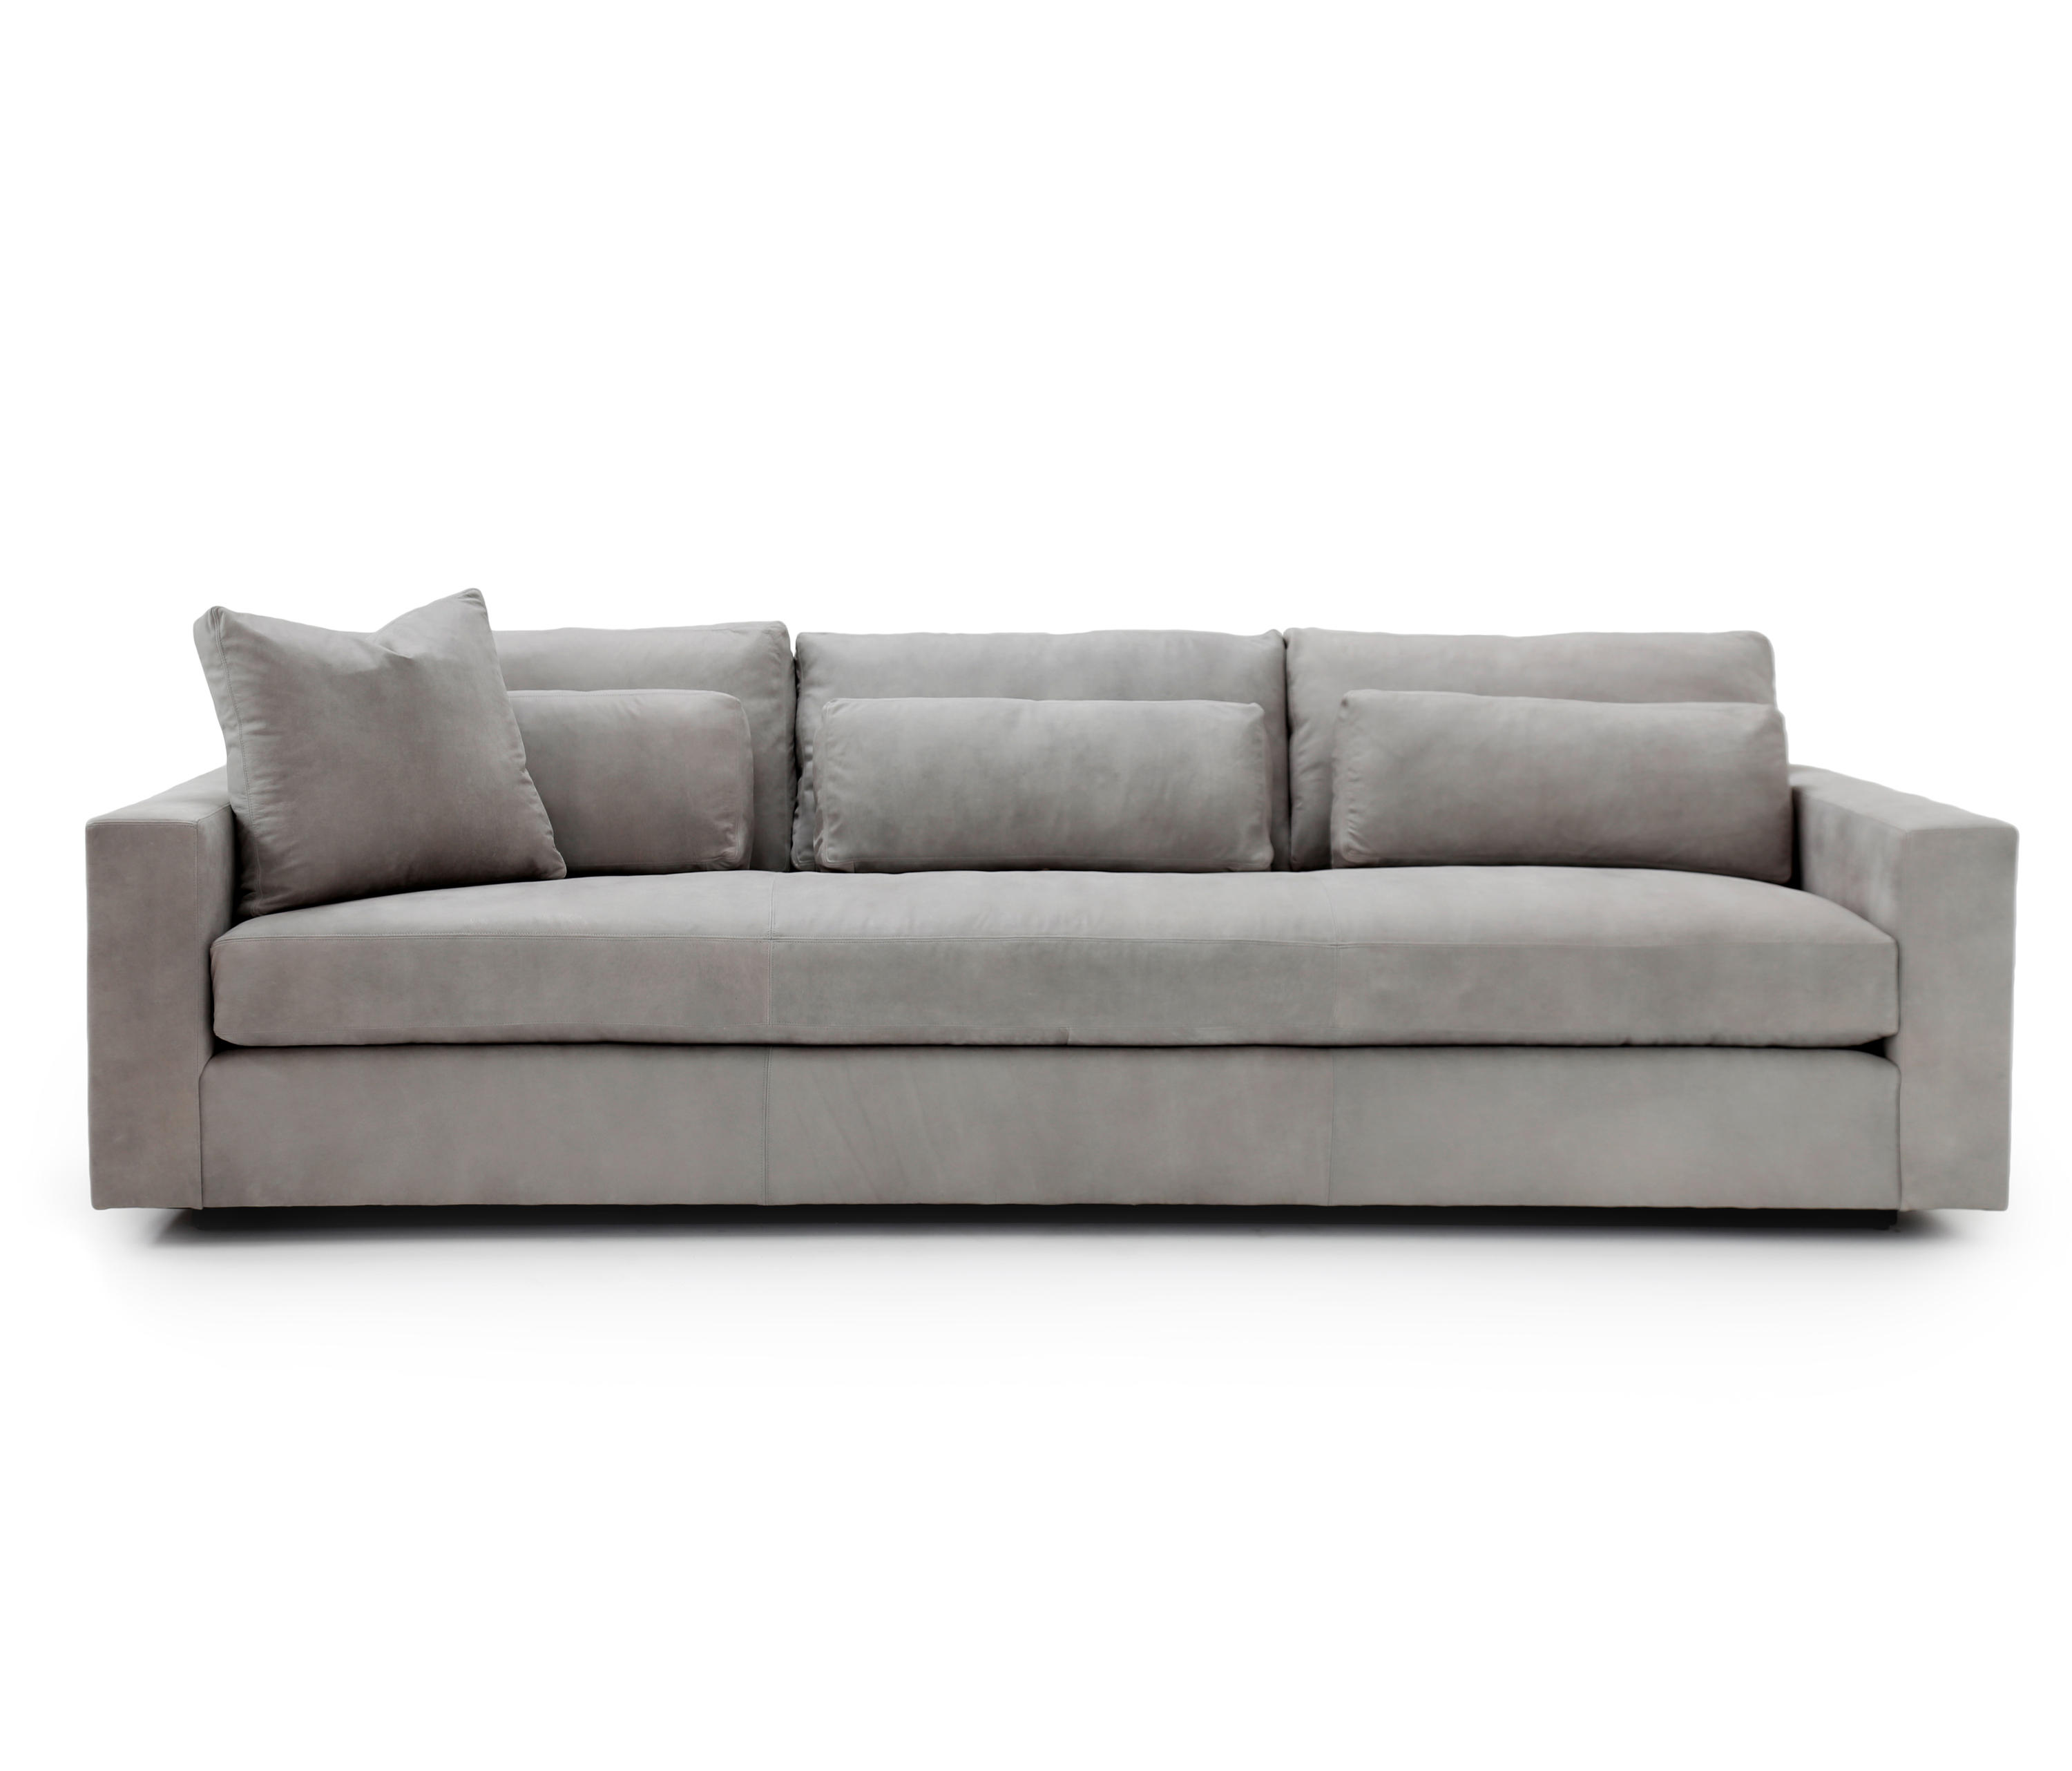 Wondrous Gregoire Sofa Designer Furniture Architonic Caraccident5 Cool Chair Designs And Ideas Caraccident5Info